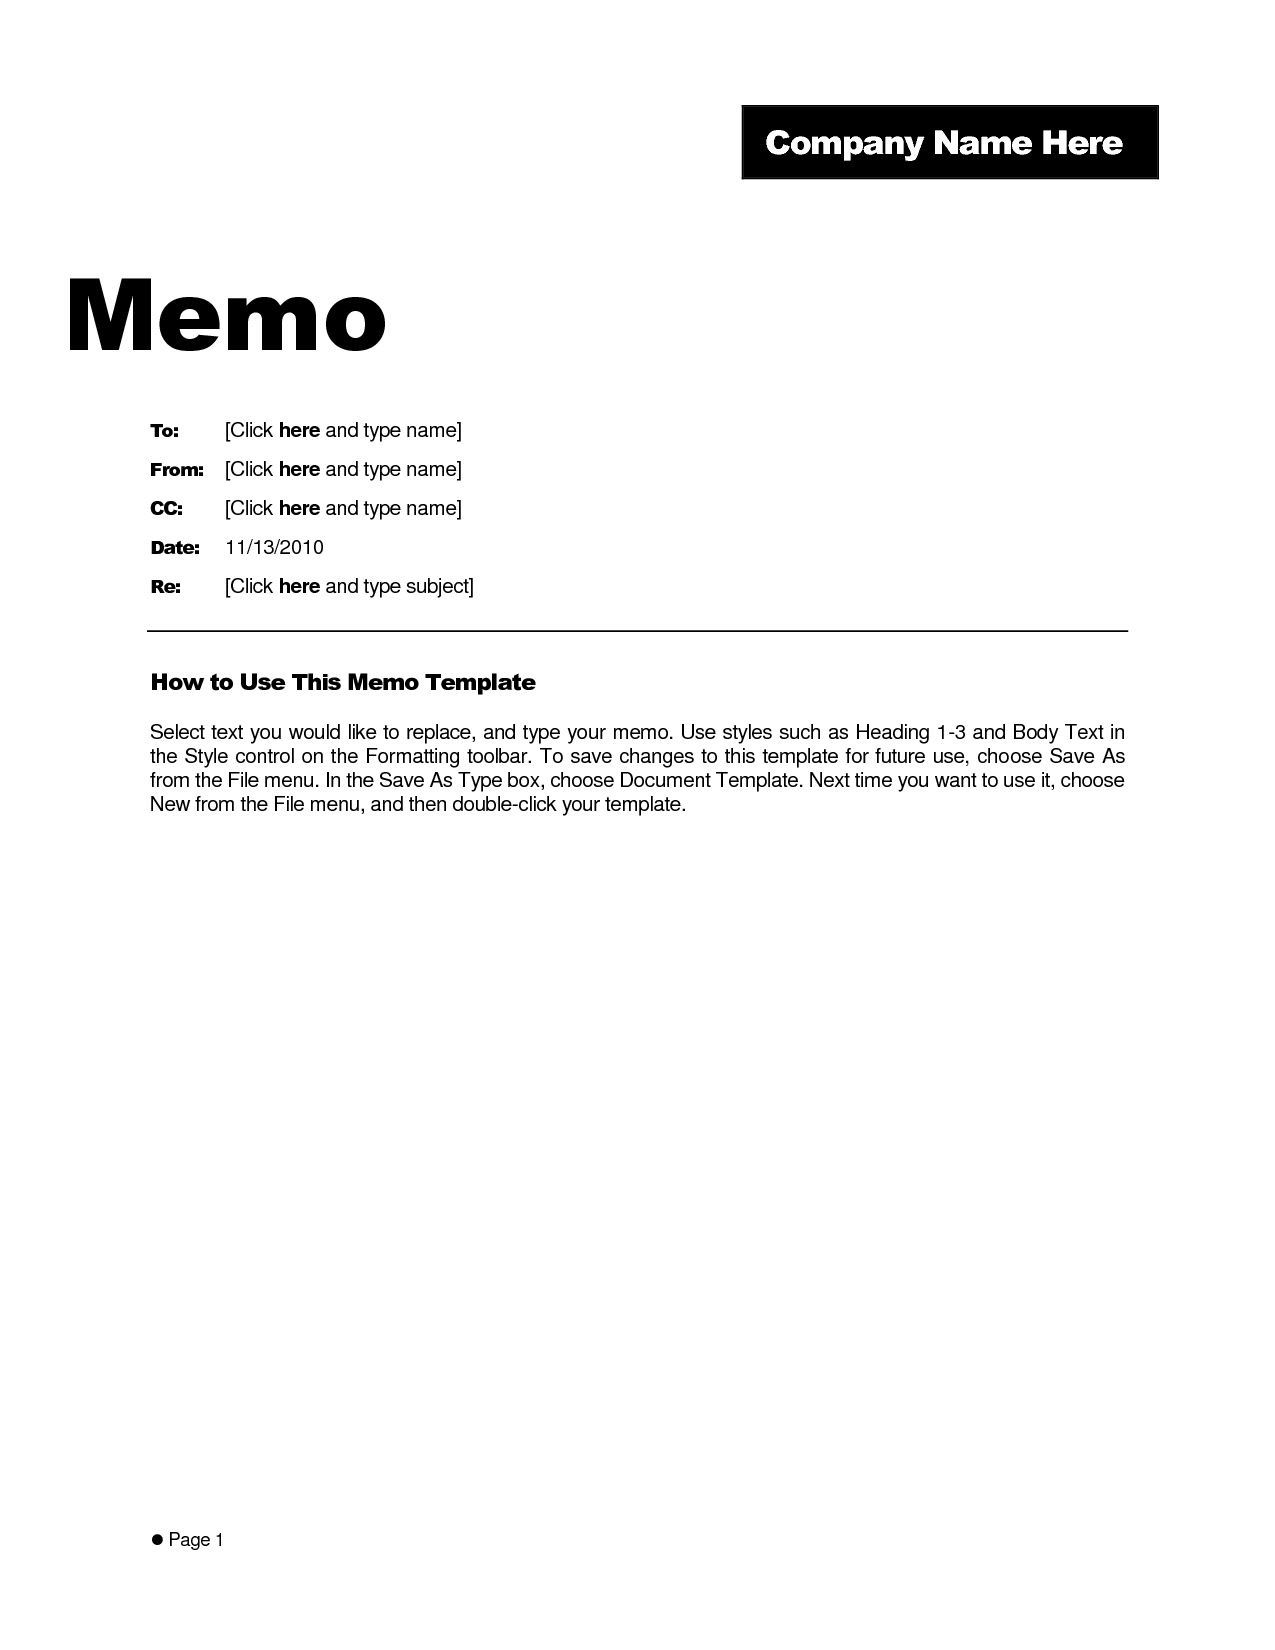 000 Archaicawful M Word Memo Template Image  Templates Microsoft Free Download BusinesFull